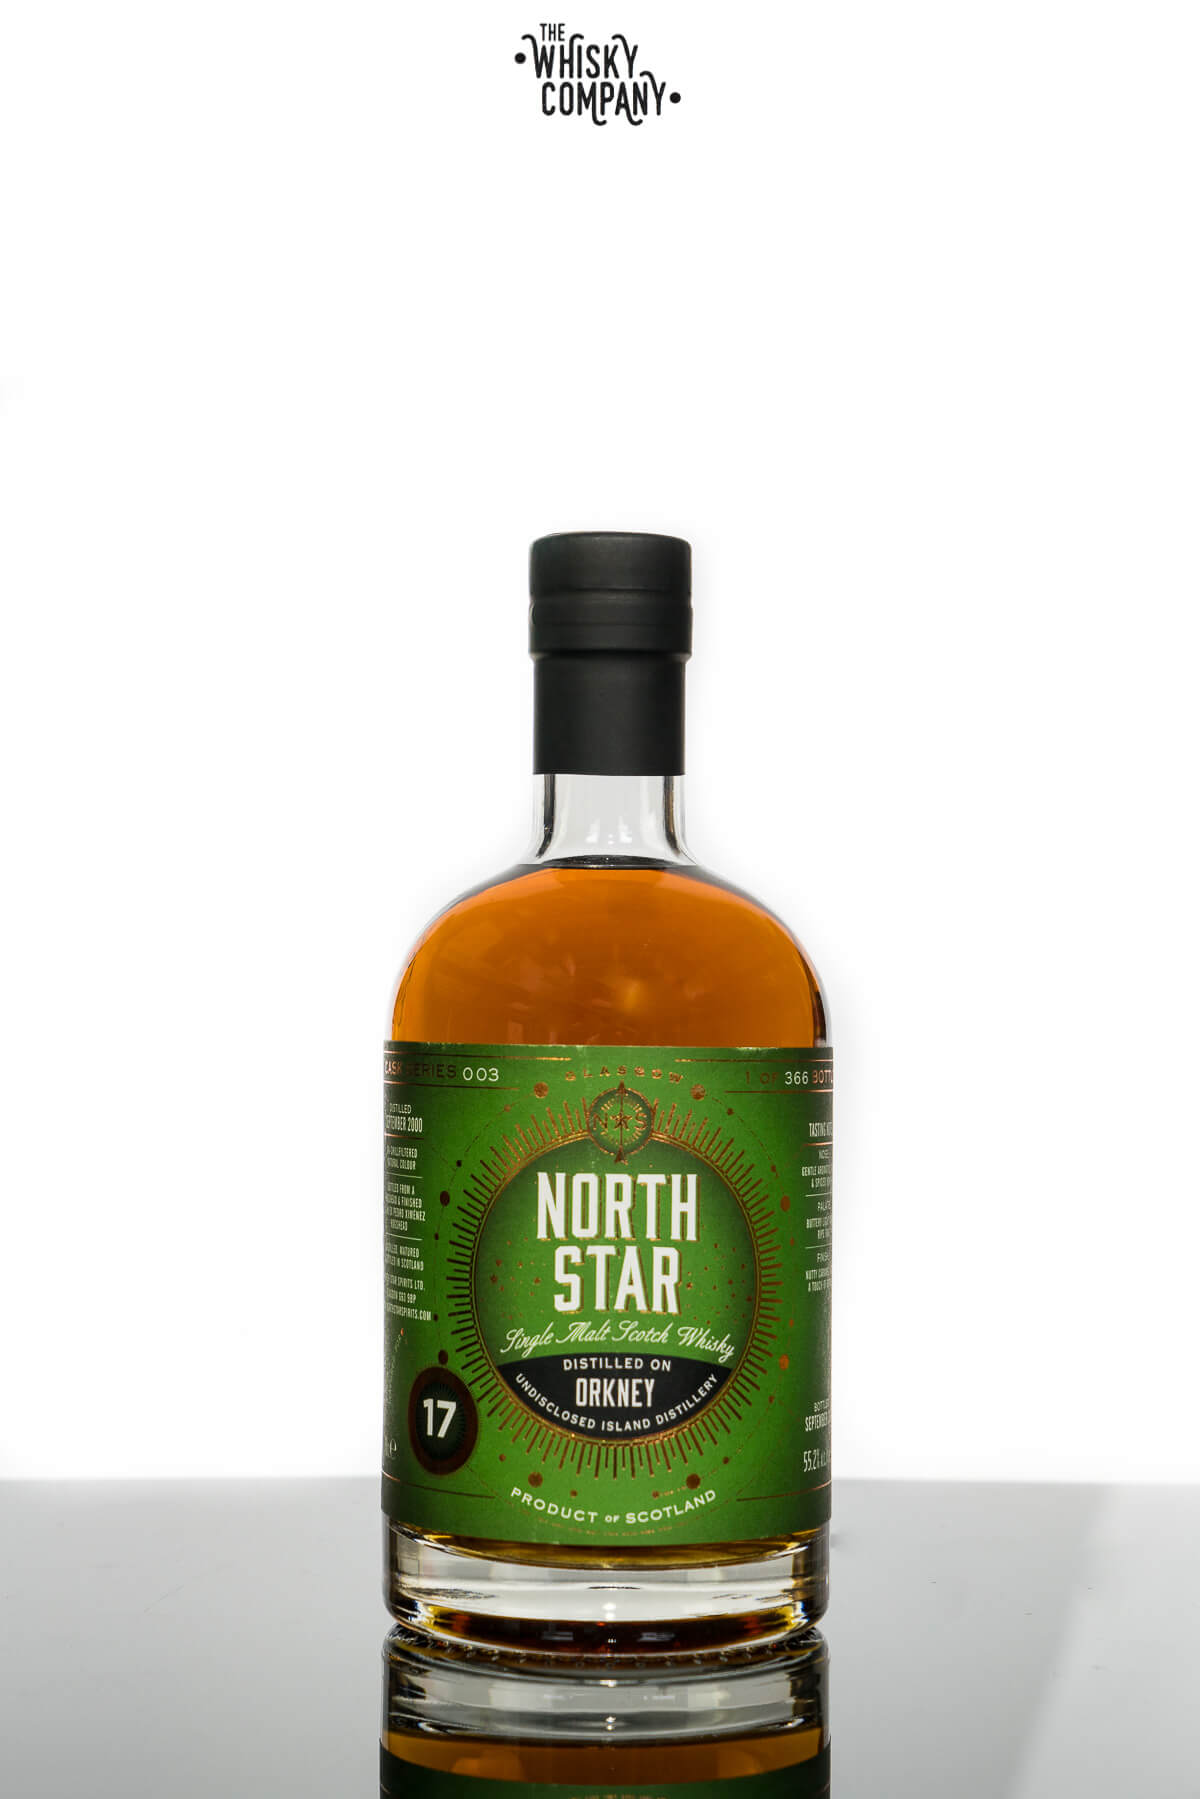 North Star Orkney Aged 17 Years Single Malt Scotch Whisky (700ml)